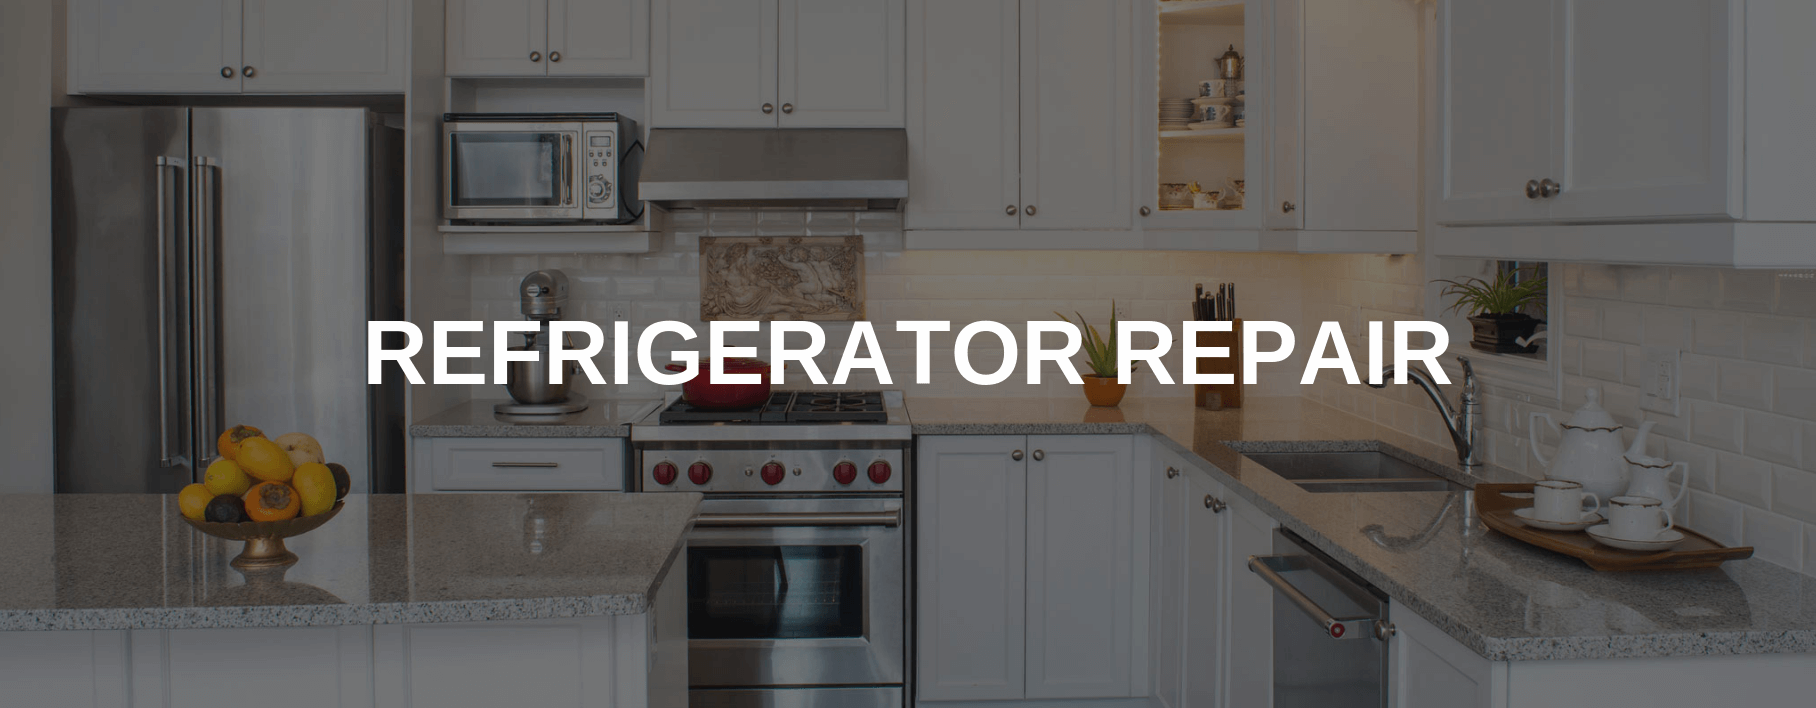 refrigerator repair virginia beach